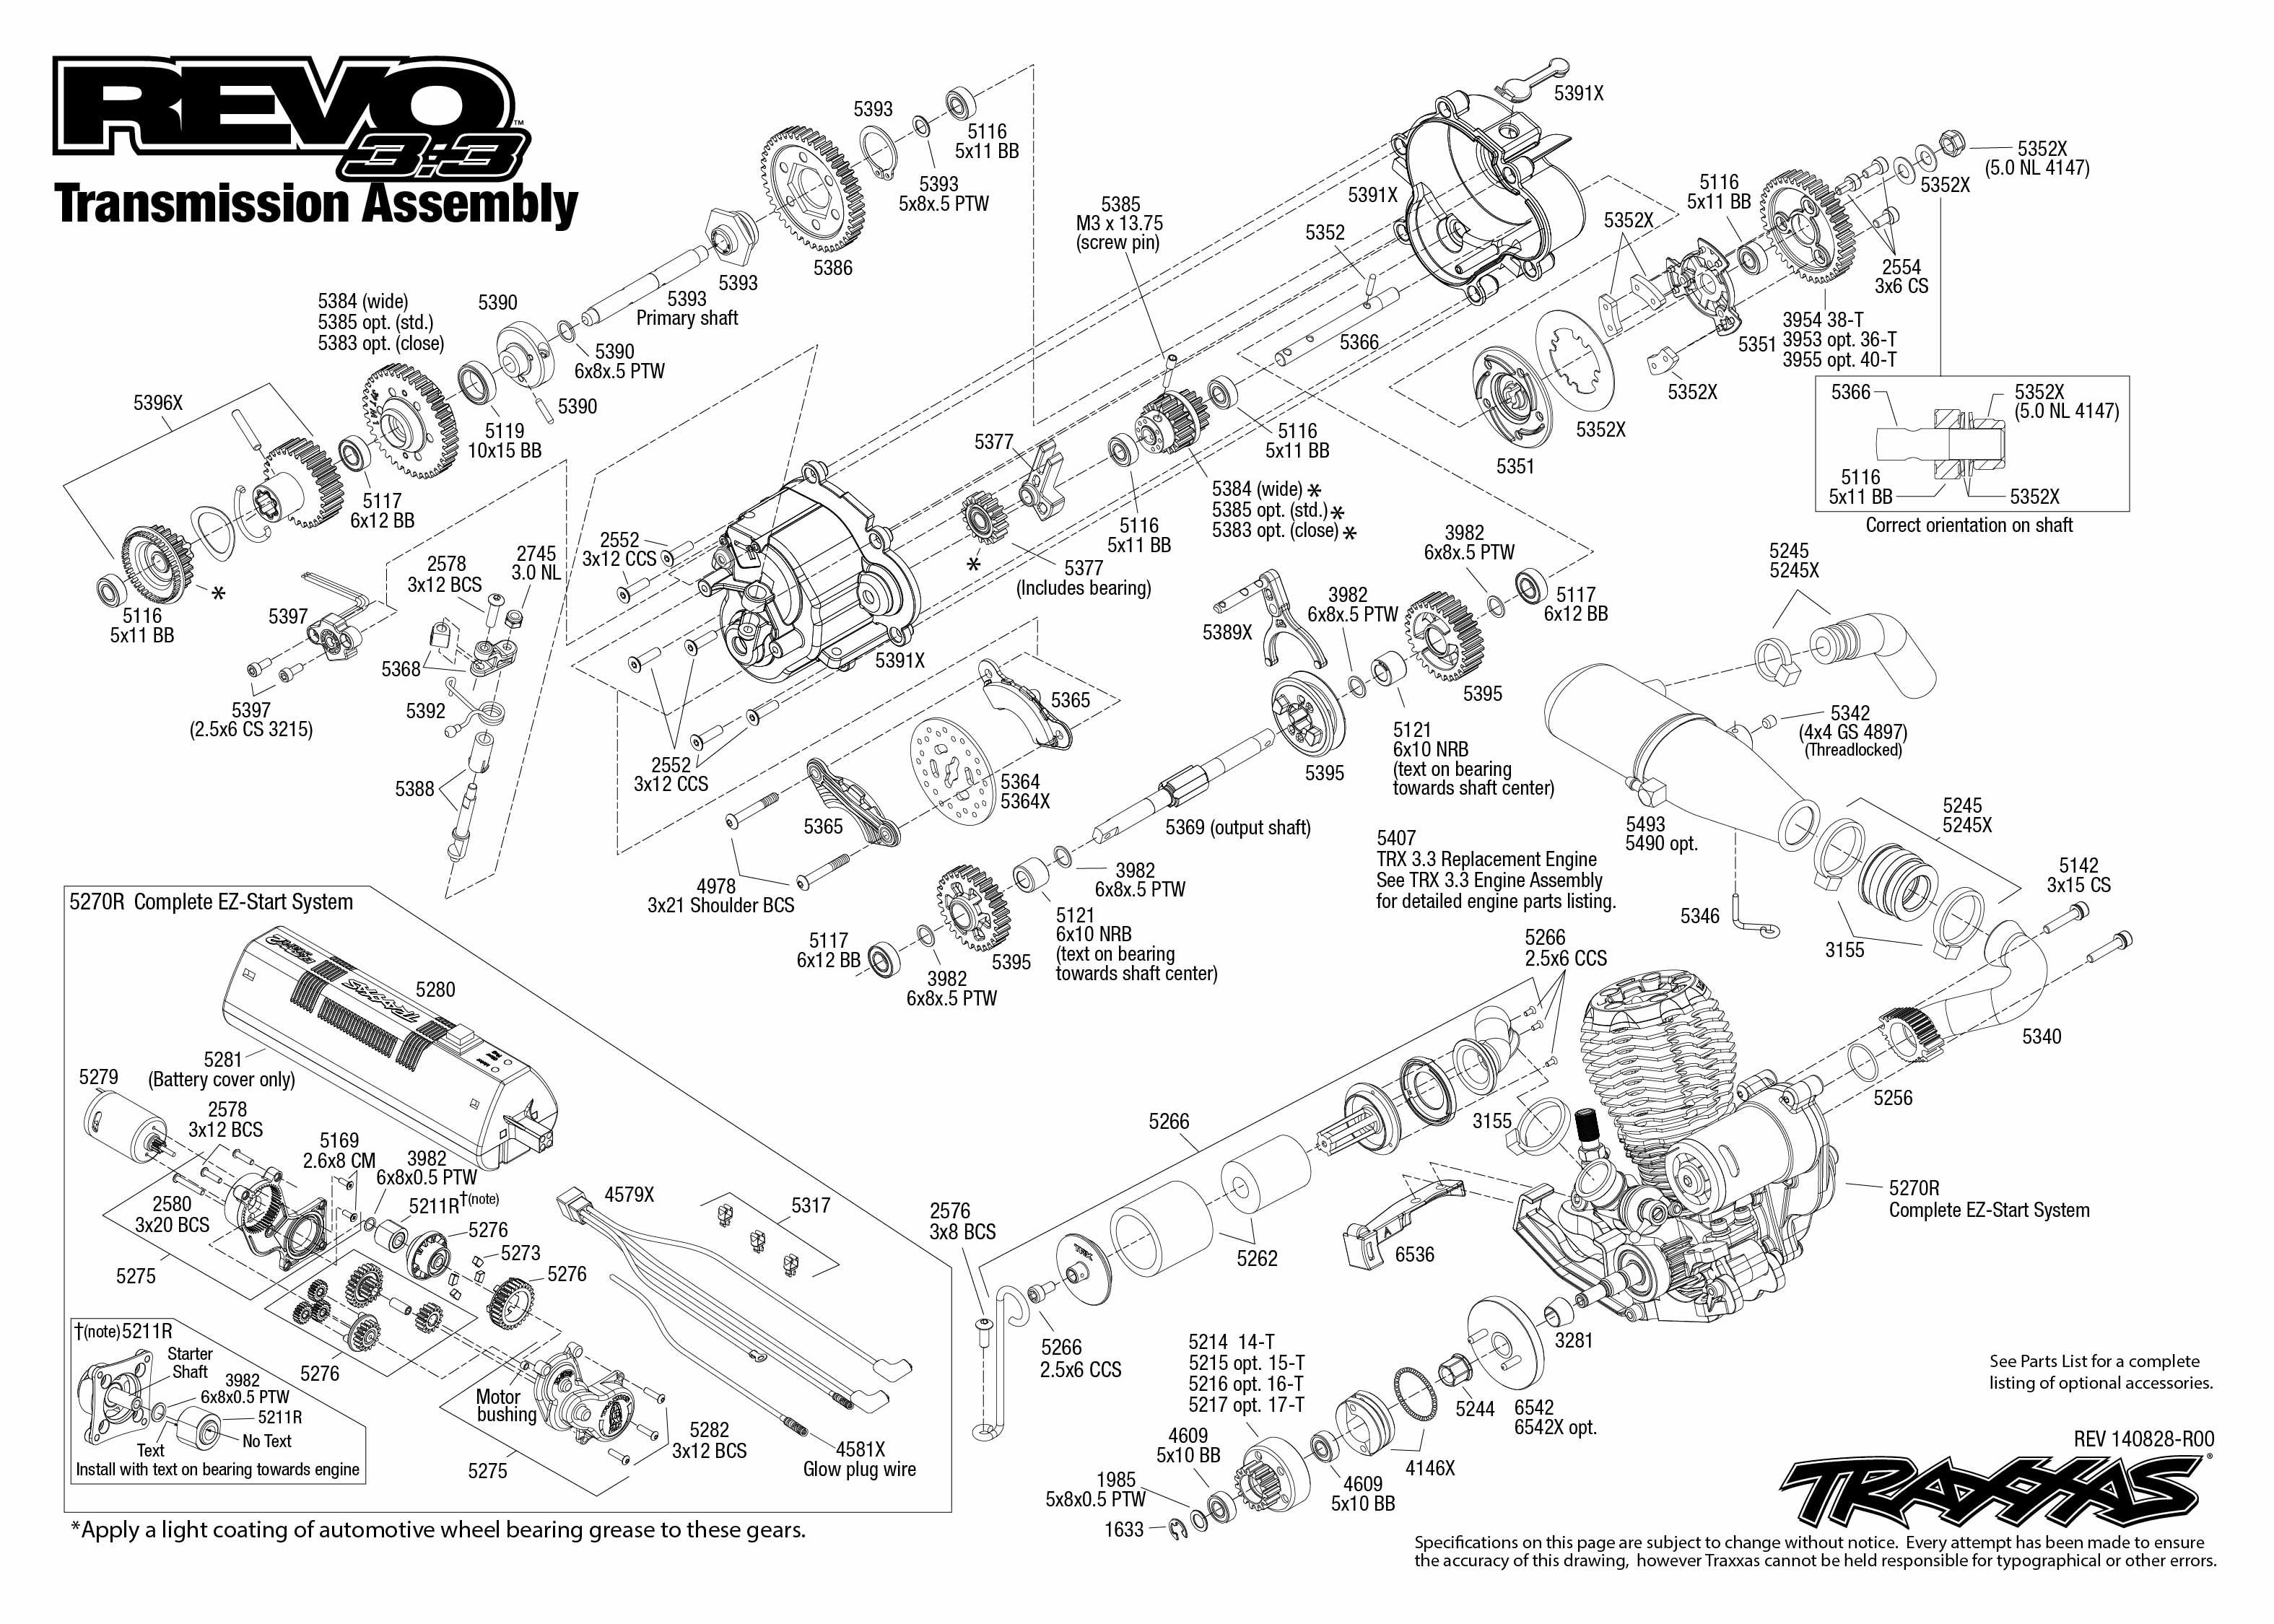 Revo 3 3 53097 1 Transmission Assembly Exploded View